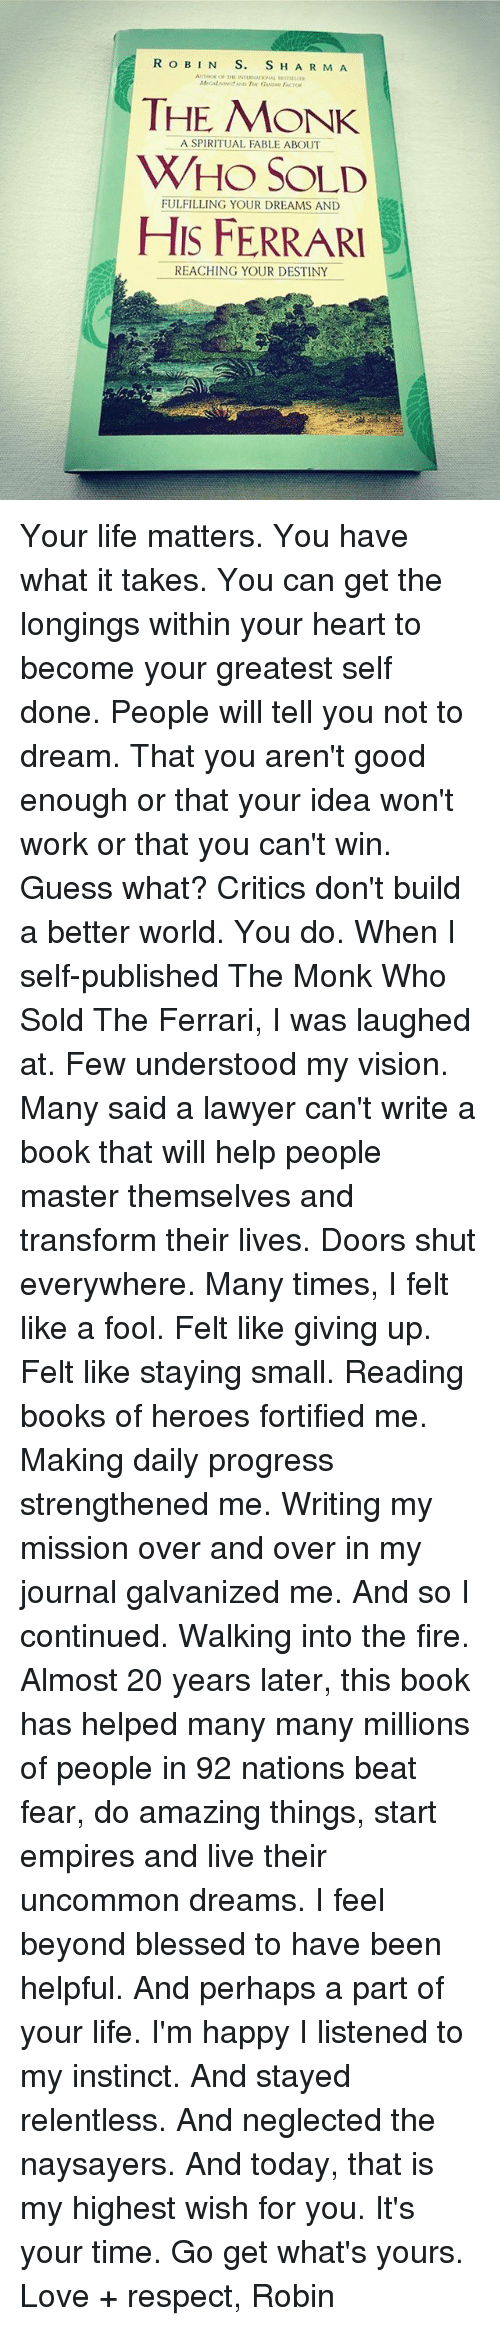 Blessed, Books, and Destiny: THE MONK  WHO SOLD  HIS FERRARI  A SPIRITUAL FABLE ABOUT  FULFILLING YOUR DREAMS AND  REACHING YOUR DESTINY Your life matters. You have what it takes. You can get the longings within your heart to become your greatest self done. People will tell you not to dream. That you aren't good enough or that your idea won't work or that you can't win. Guess what? Critics don't build a better world. You do. When I self-published The Monk Who Sold The Ferrari, I was laughed at. Few understood my vision. Many said a lawyer can't write a book that will help people master themselves and transform their lives. Doors shut everywhere. Many times, I felt like a fool. Felt like giving up. Felt like staying small. Reading books of heroes fortified me. Making daily progress strengthened me. Writing my mission over and over in my journal galvanized me. And so I continued. Walking into the fire. Almost 20 years later, this book has helped many many millions of people in 92 nations beat fear, do amazing things, start empires and live their uncommon dreams. I feel beyond blessed to have been helpful. And perhaps a part of your life. I'm happy I listened to my instinct. And stayed relentless. And neglected the naysayers. And today, that is my highest wish for you. It's your time. Go get what's yours. Love + respect, Robin